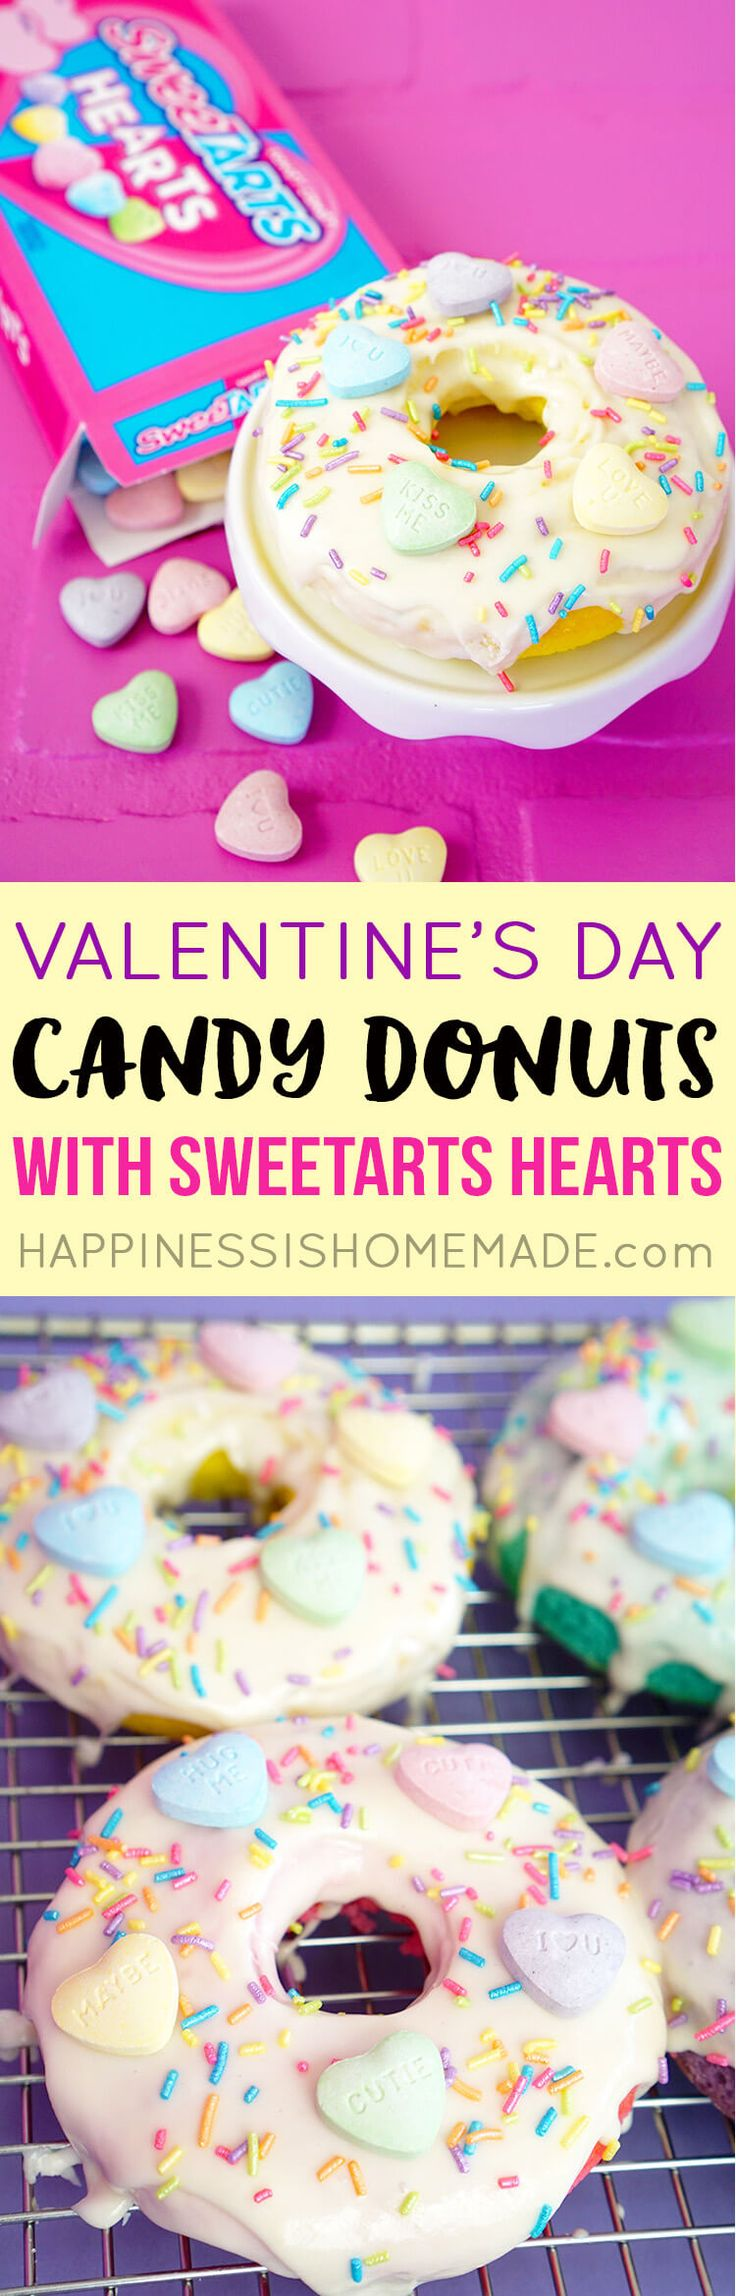 Valentine's Day Donuts with @SweeTARTS - the perfect gift for your sweetheart! #ValentinesDay #ad